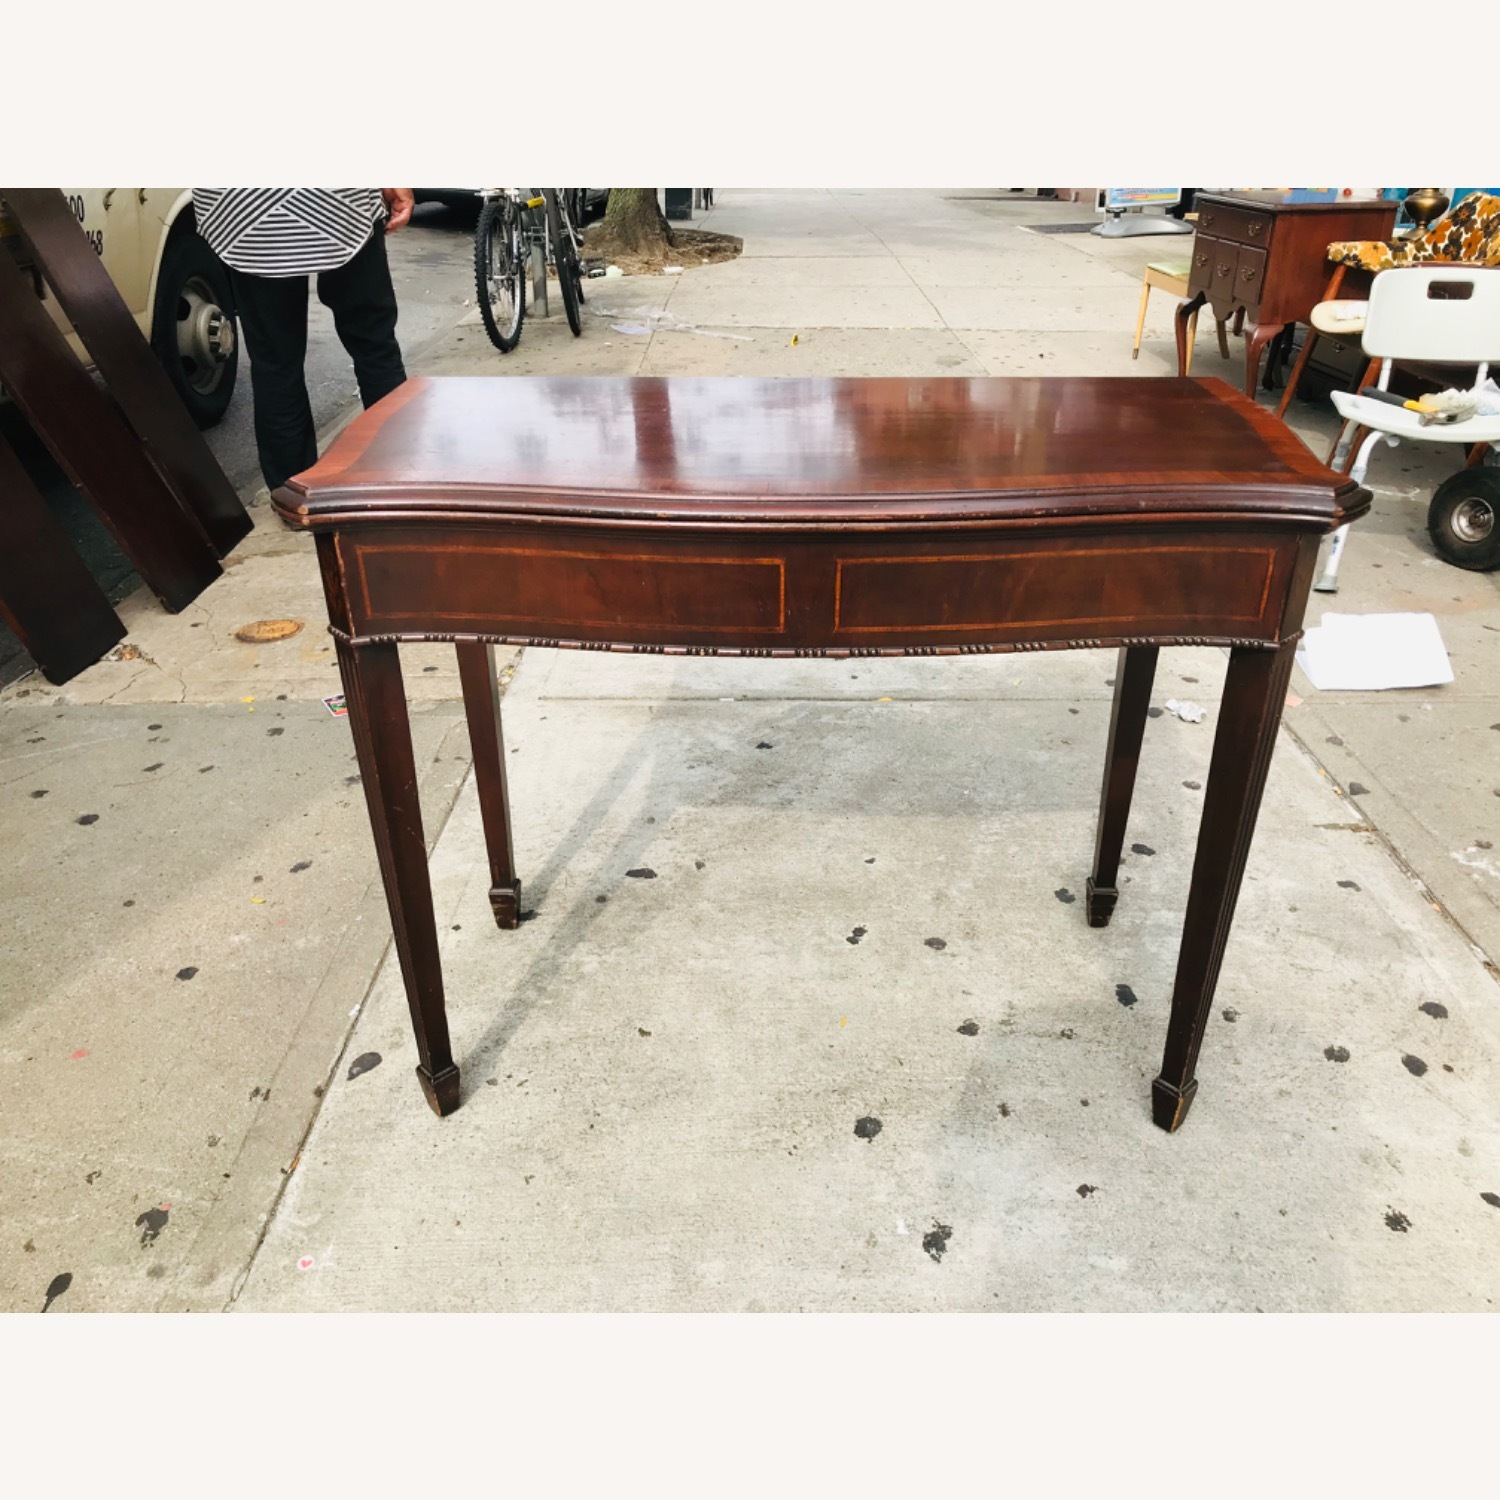 Antique 1920s Mahogany Table w/3 Leaves  - image-1